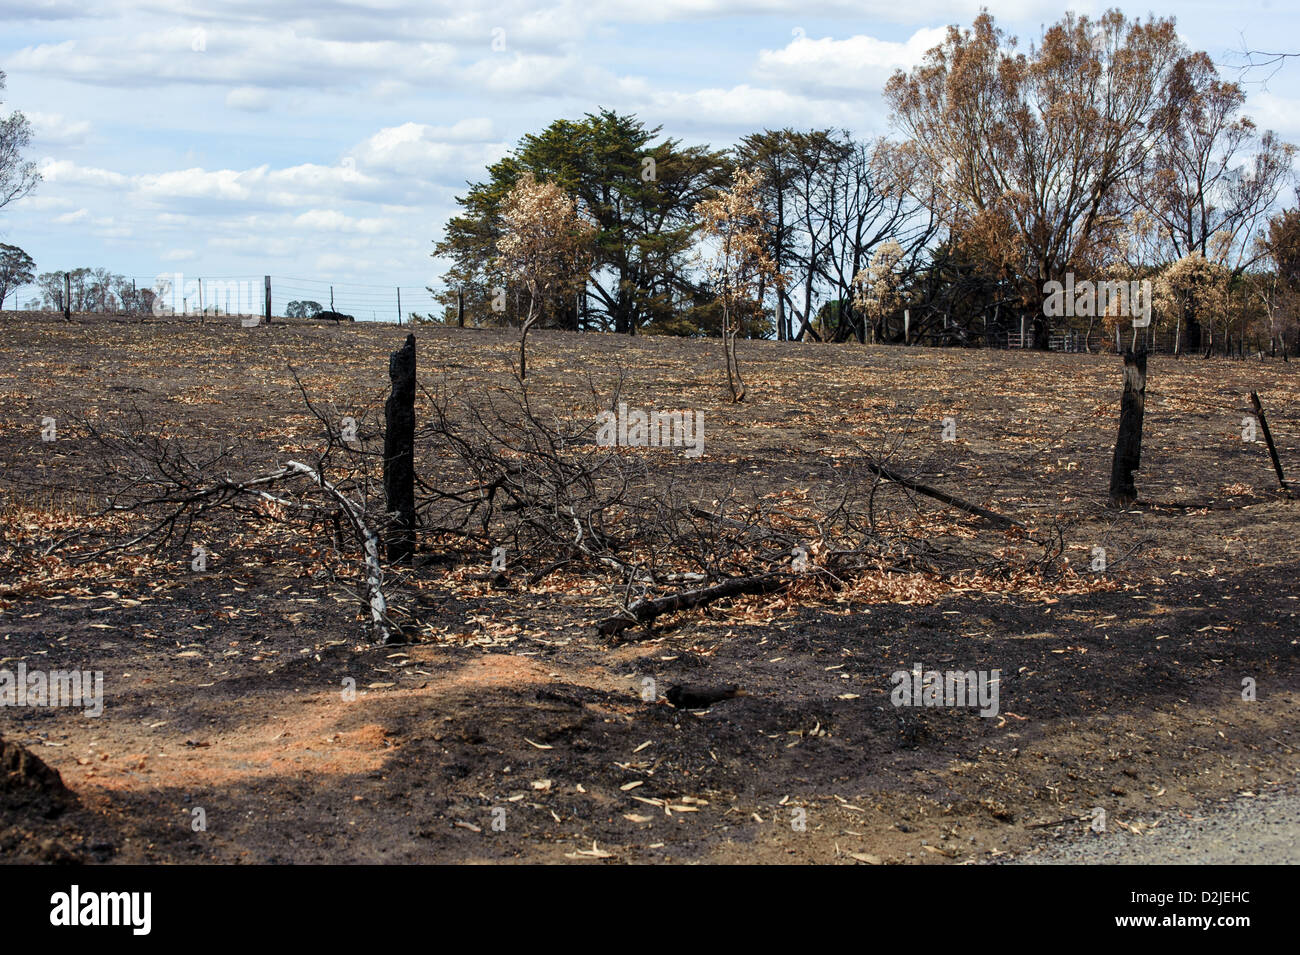 Fire damage from the Victorian Bushfires of 2009 was widespread - Stock Image